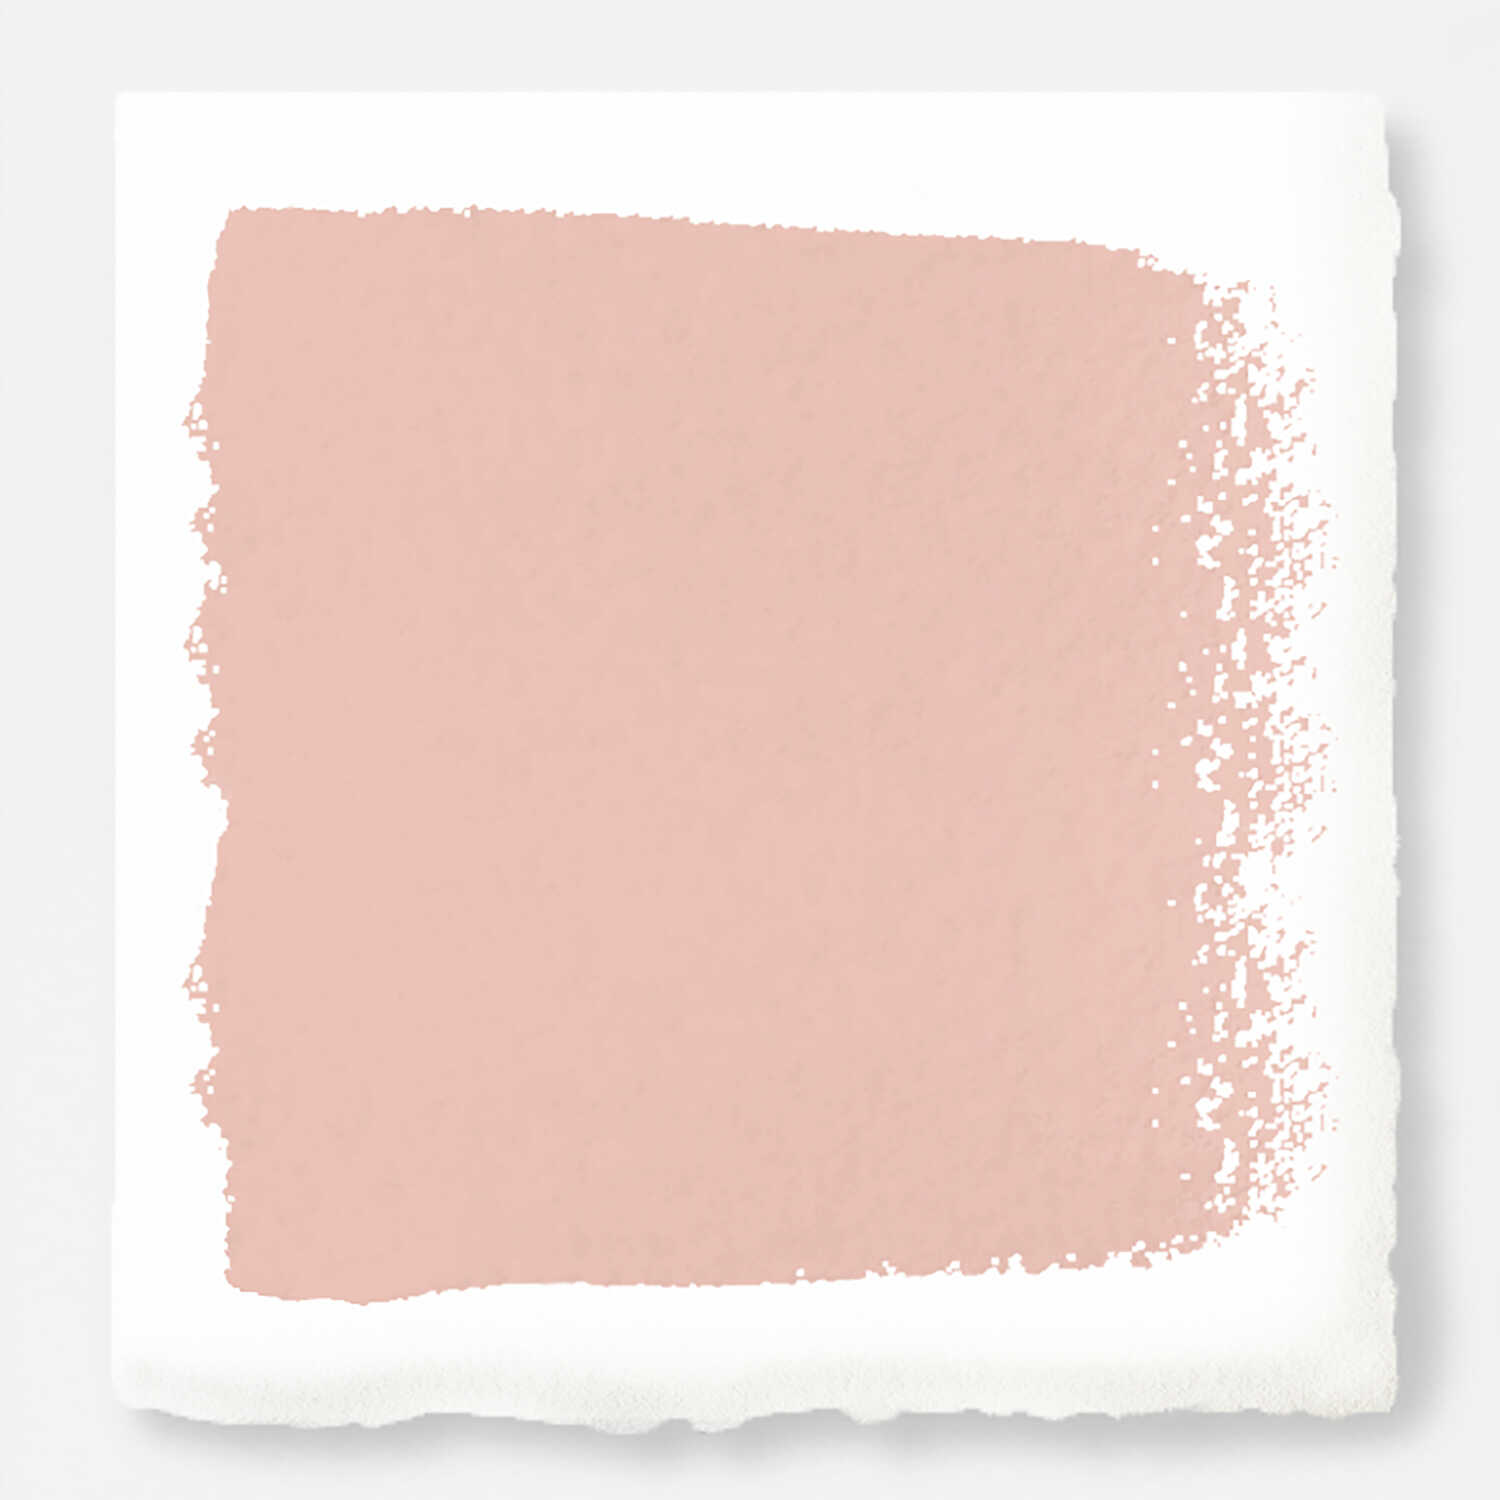 Magnolia Home  Semi-Gloss  Cabbage Rose  Exterior Paint and Primer  1 gal.